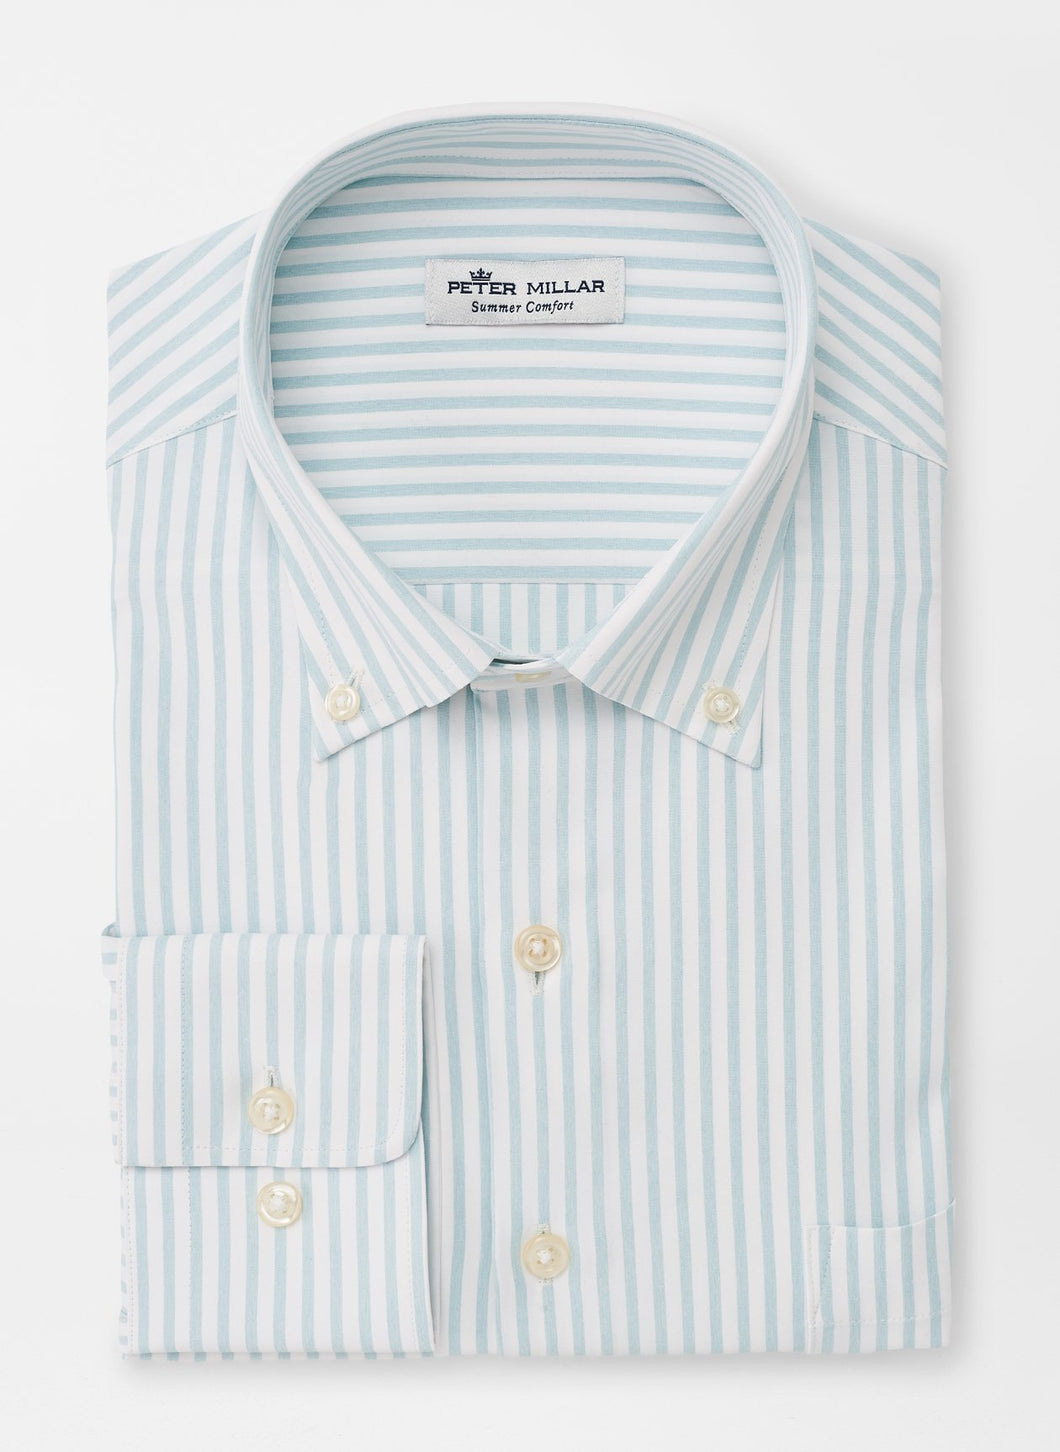 Peter Millar Gates Natural Touch Sport Shirt in Frost Blue